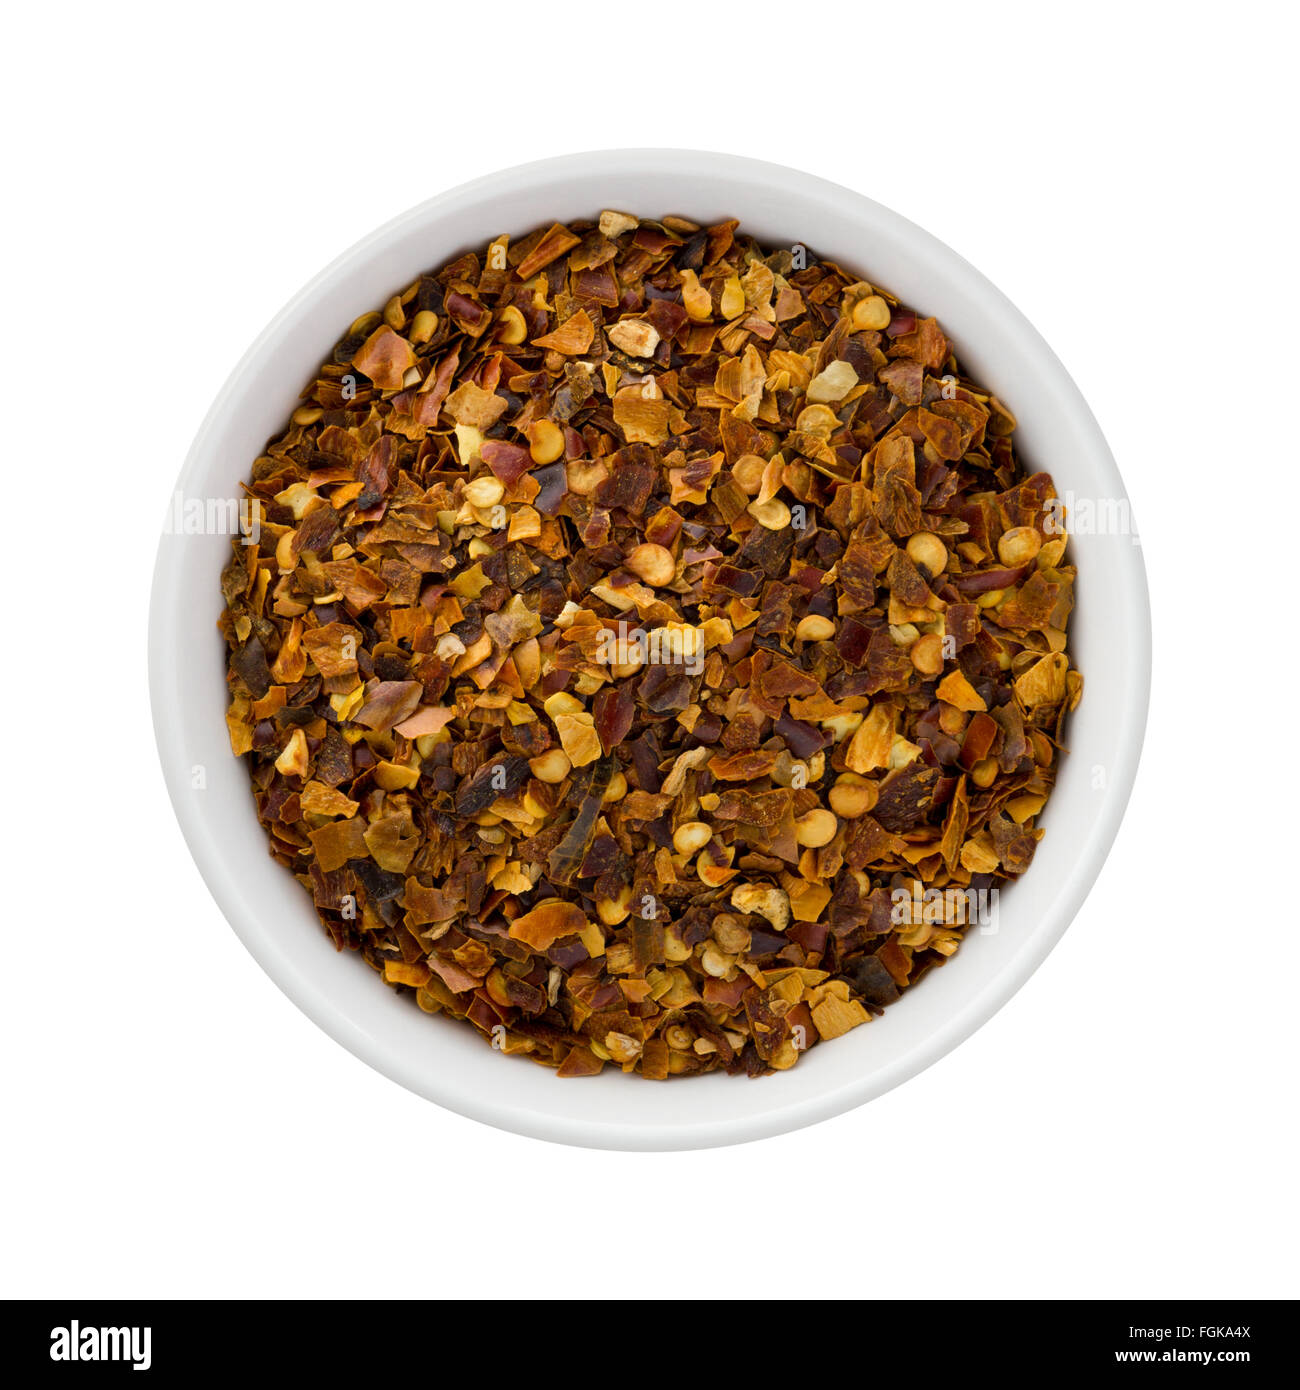 Crushed Red Pepper in a Ceramic Bowl. The image is a cut out, isolated on a white background. - Stock Image